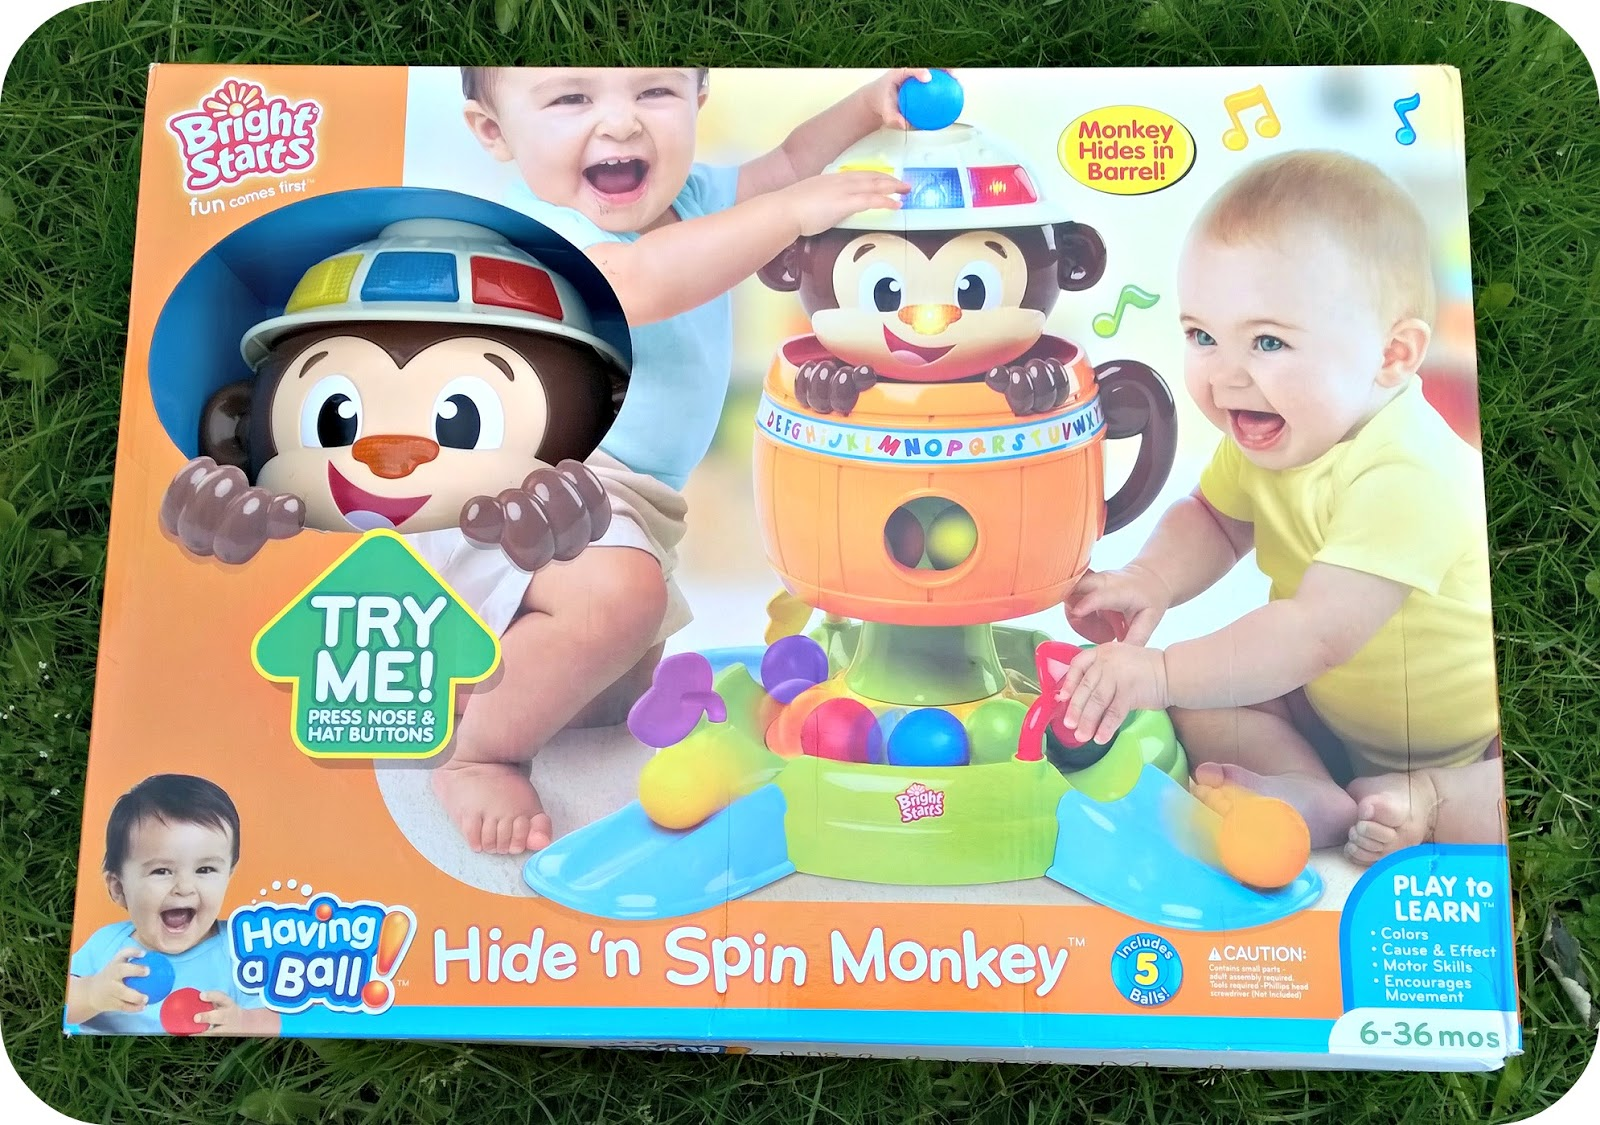 bright starts hide and spin monkey instructions